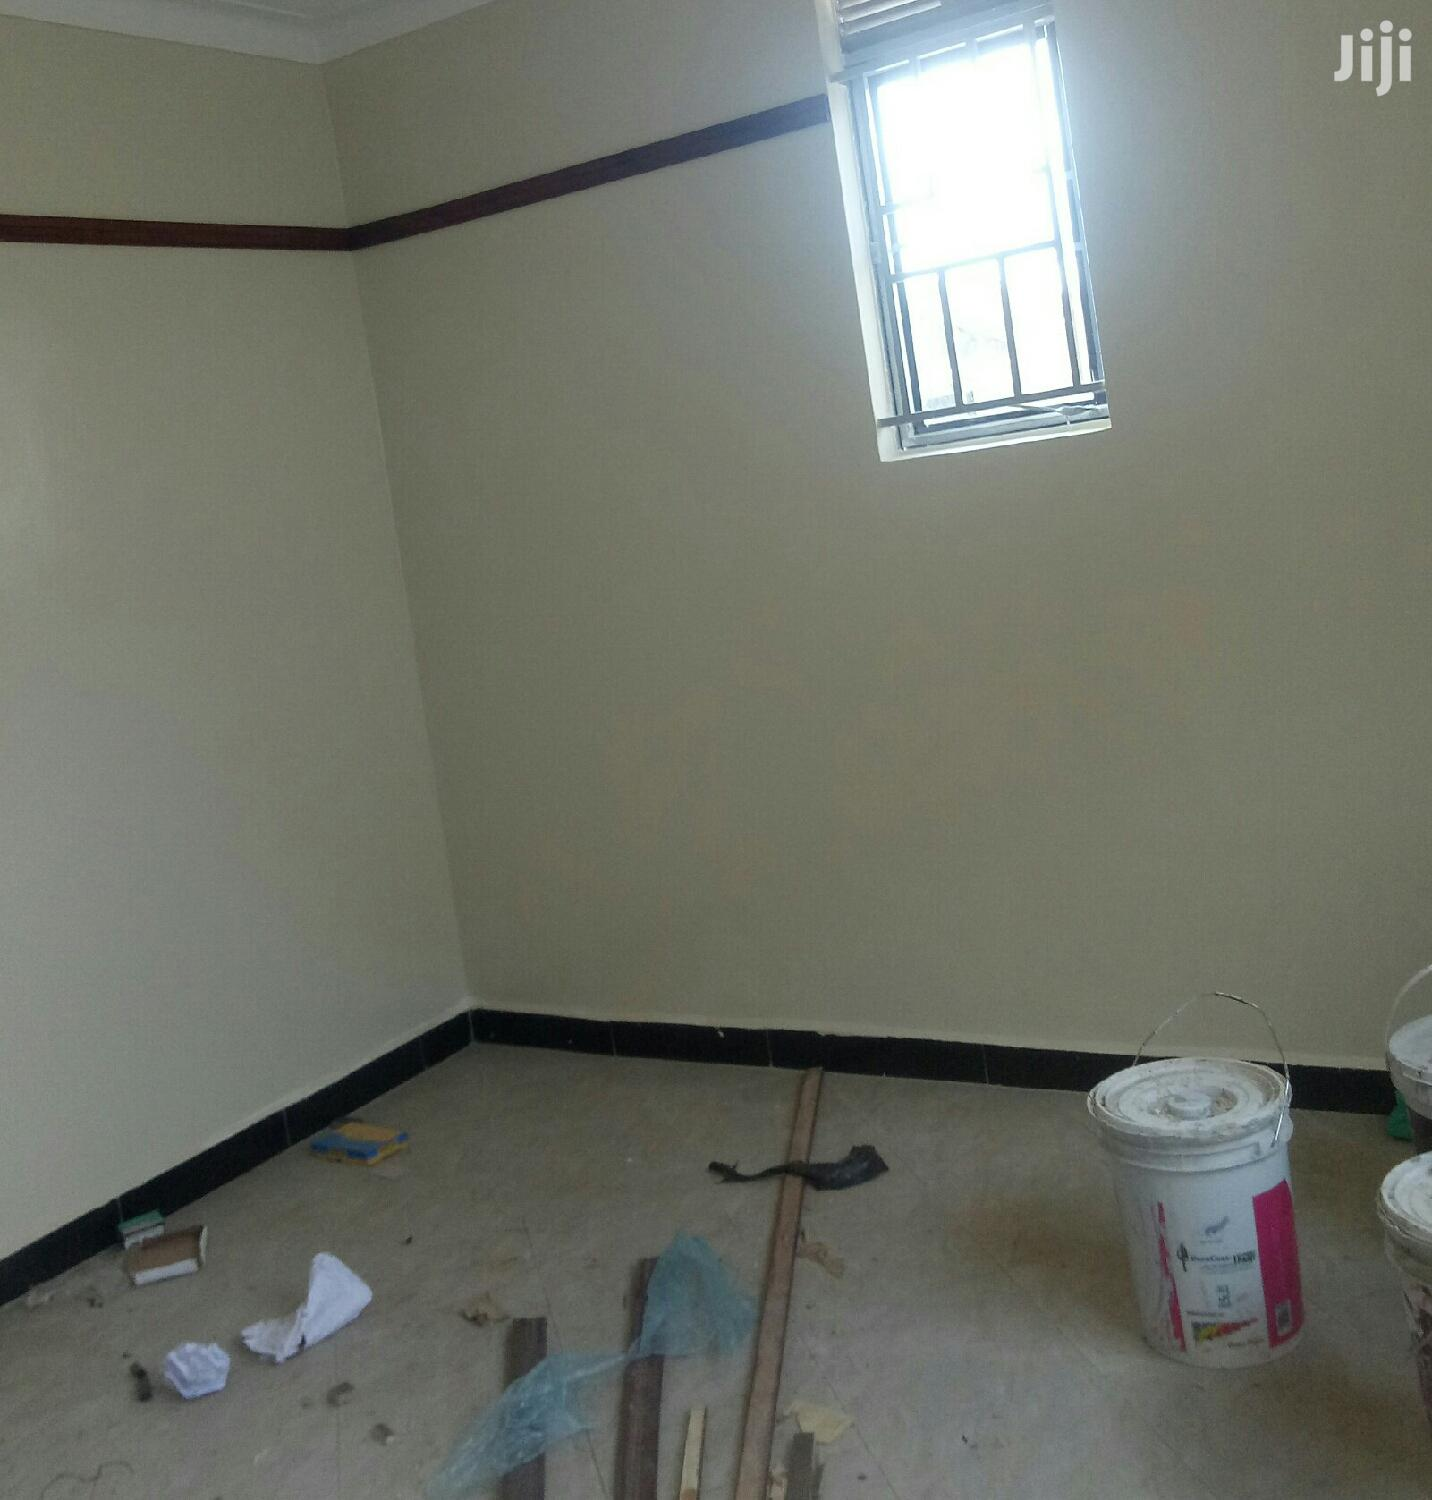 Kireka Single Room Self Contained | Houses & Apartments For Rent for sale in Kampala, Central Region, Uganda